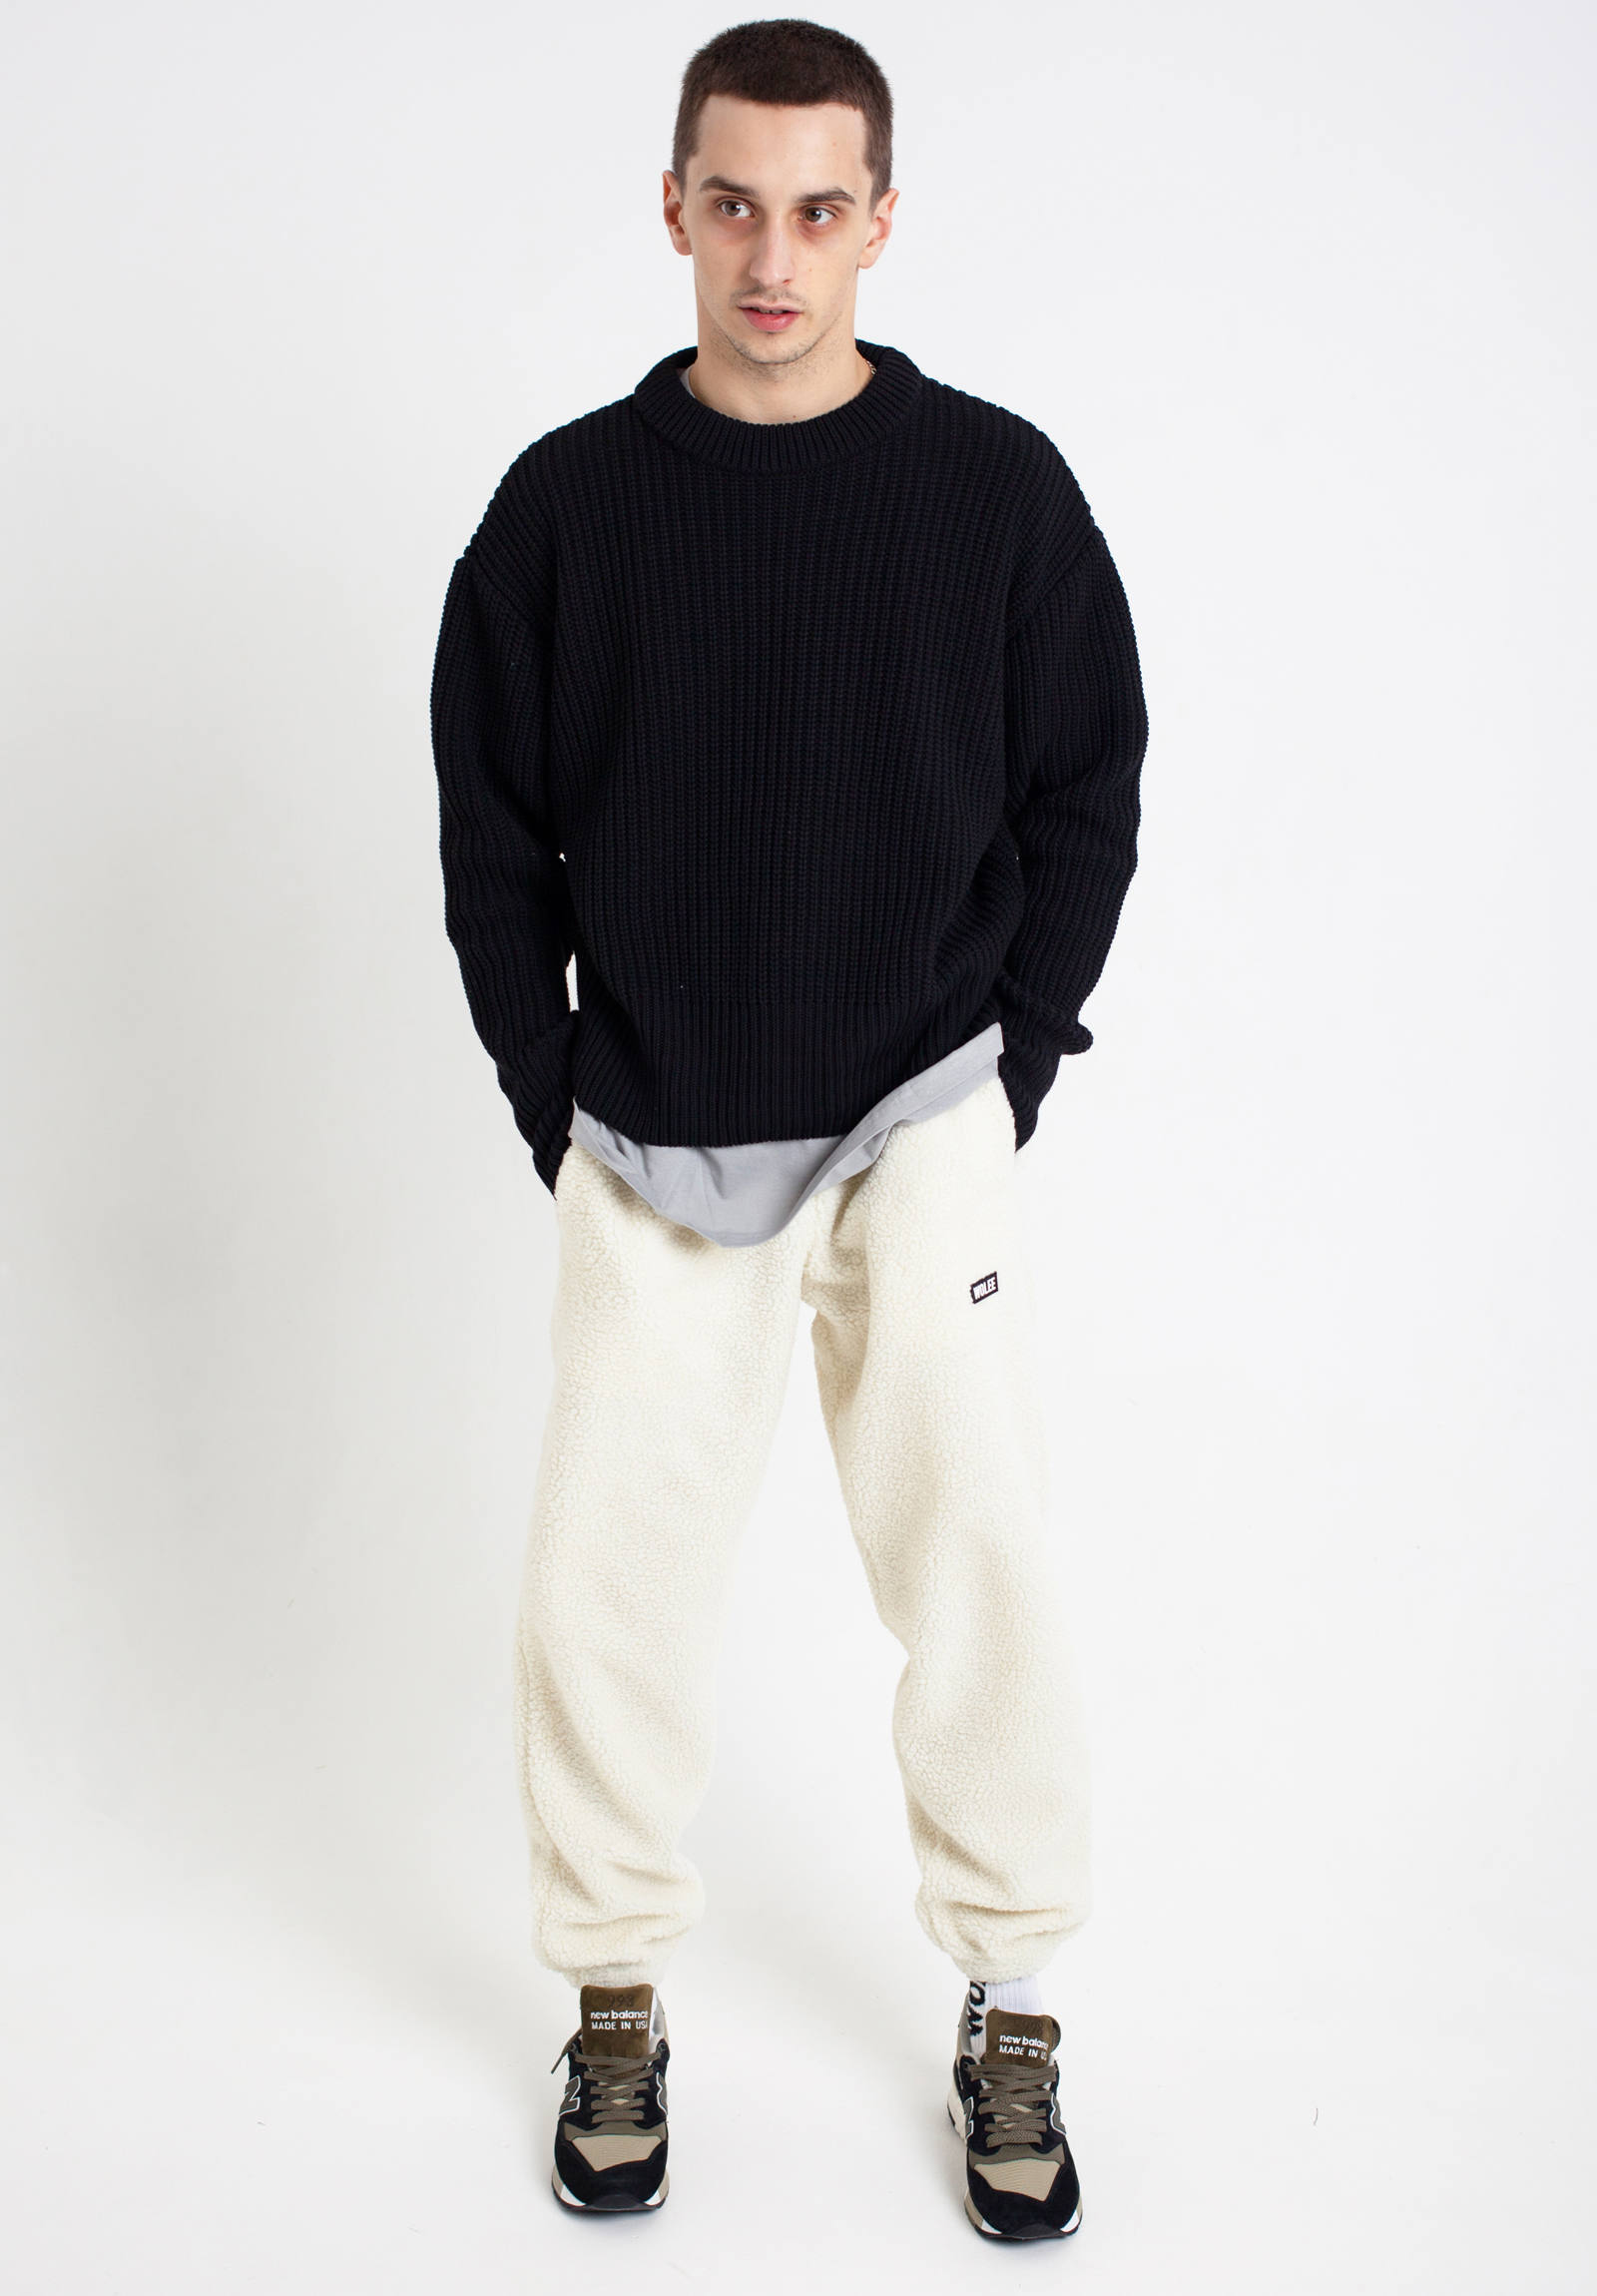 クルーネックセーター Crewneck Knit Sweater -Black-